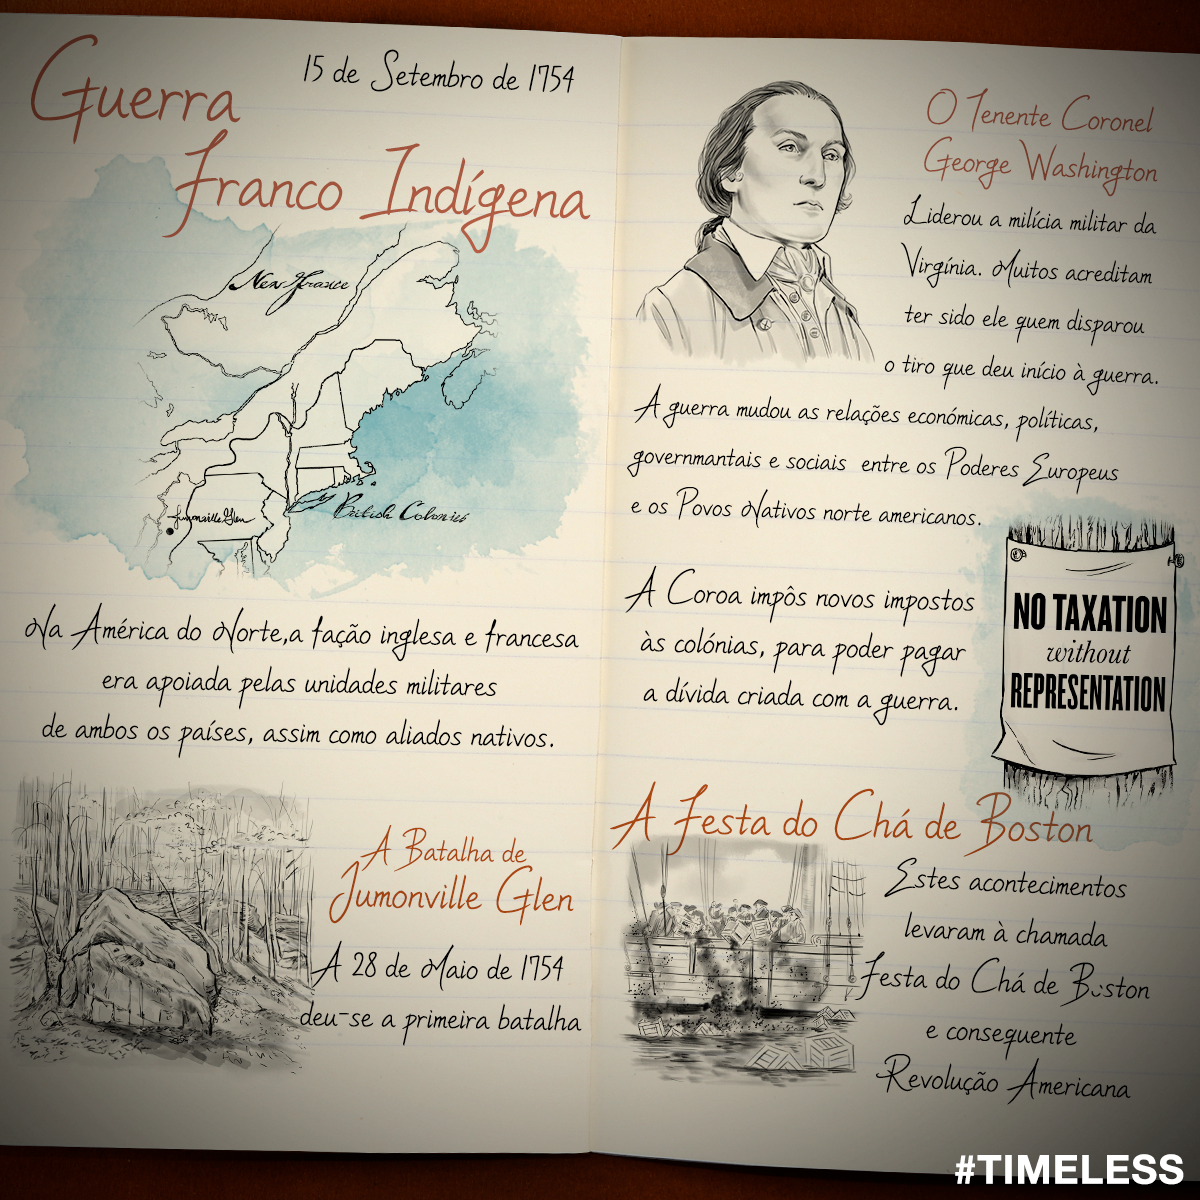 nbc_timeless_journal_frenchindianwar_01_0